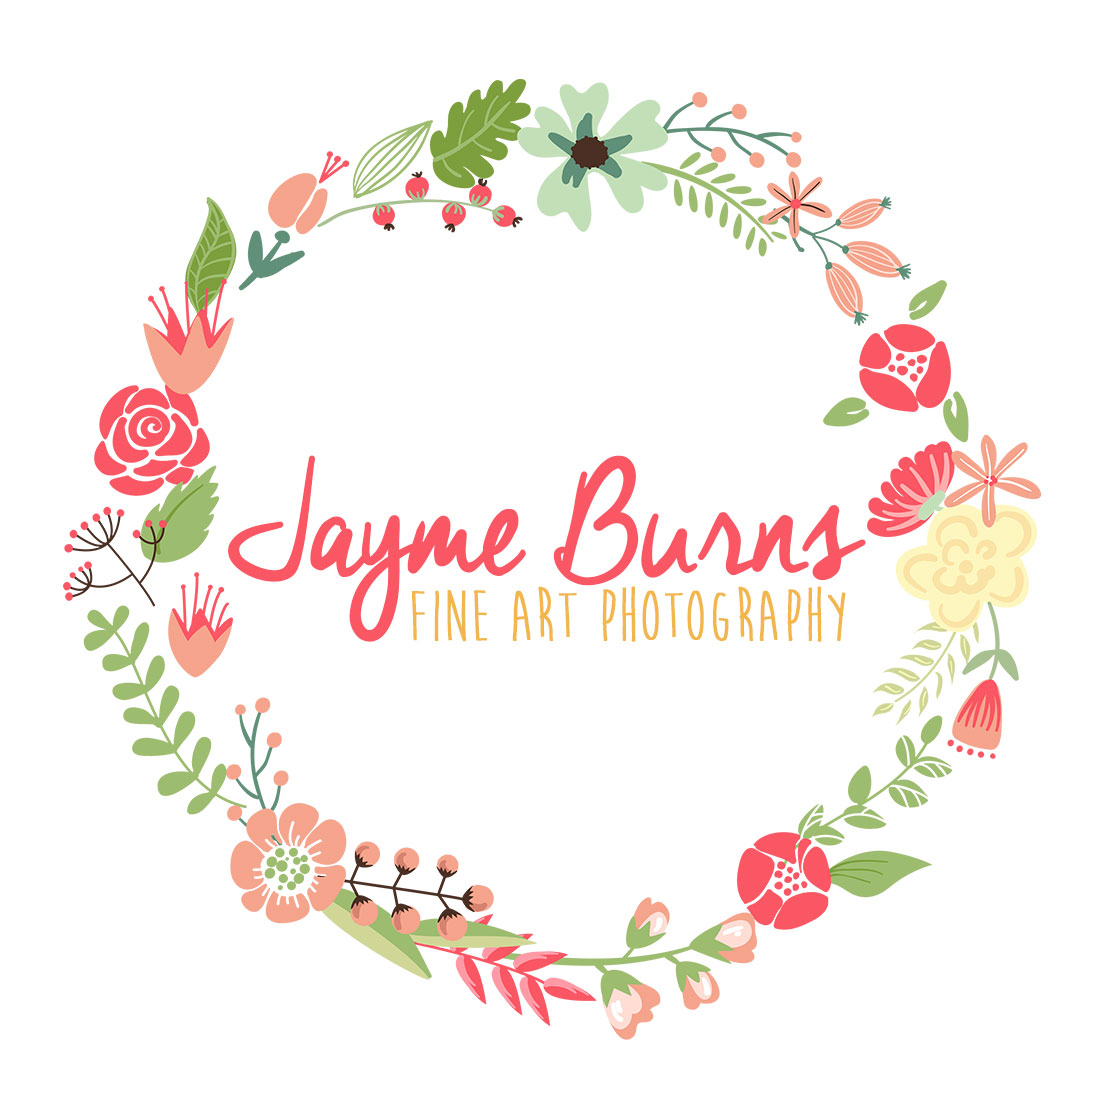 Jayme Burns Fine Art and Photography